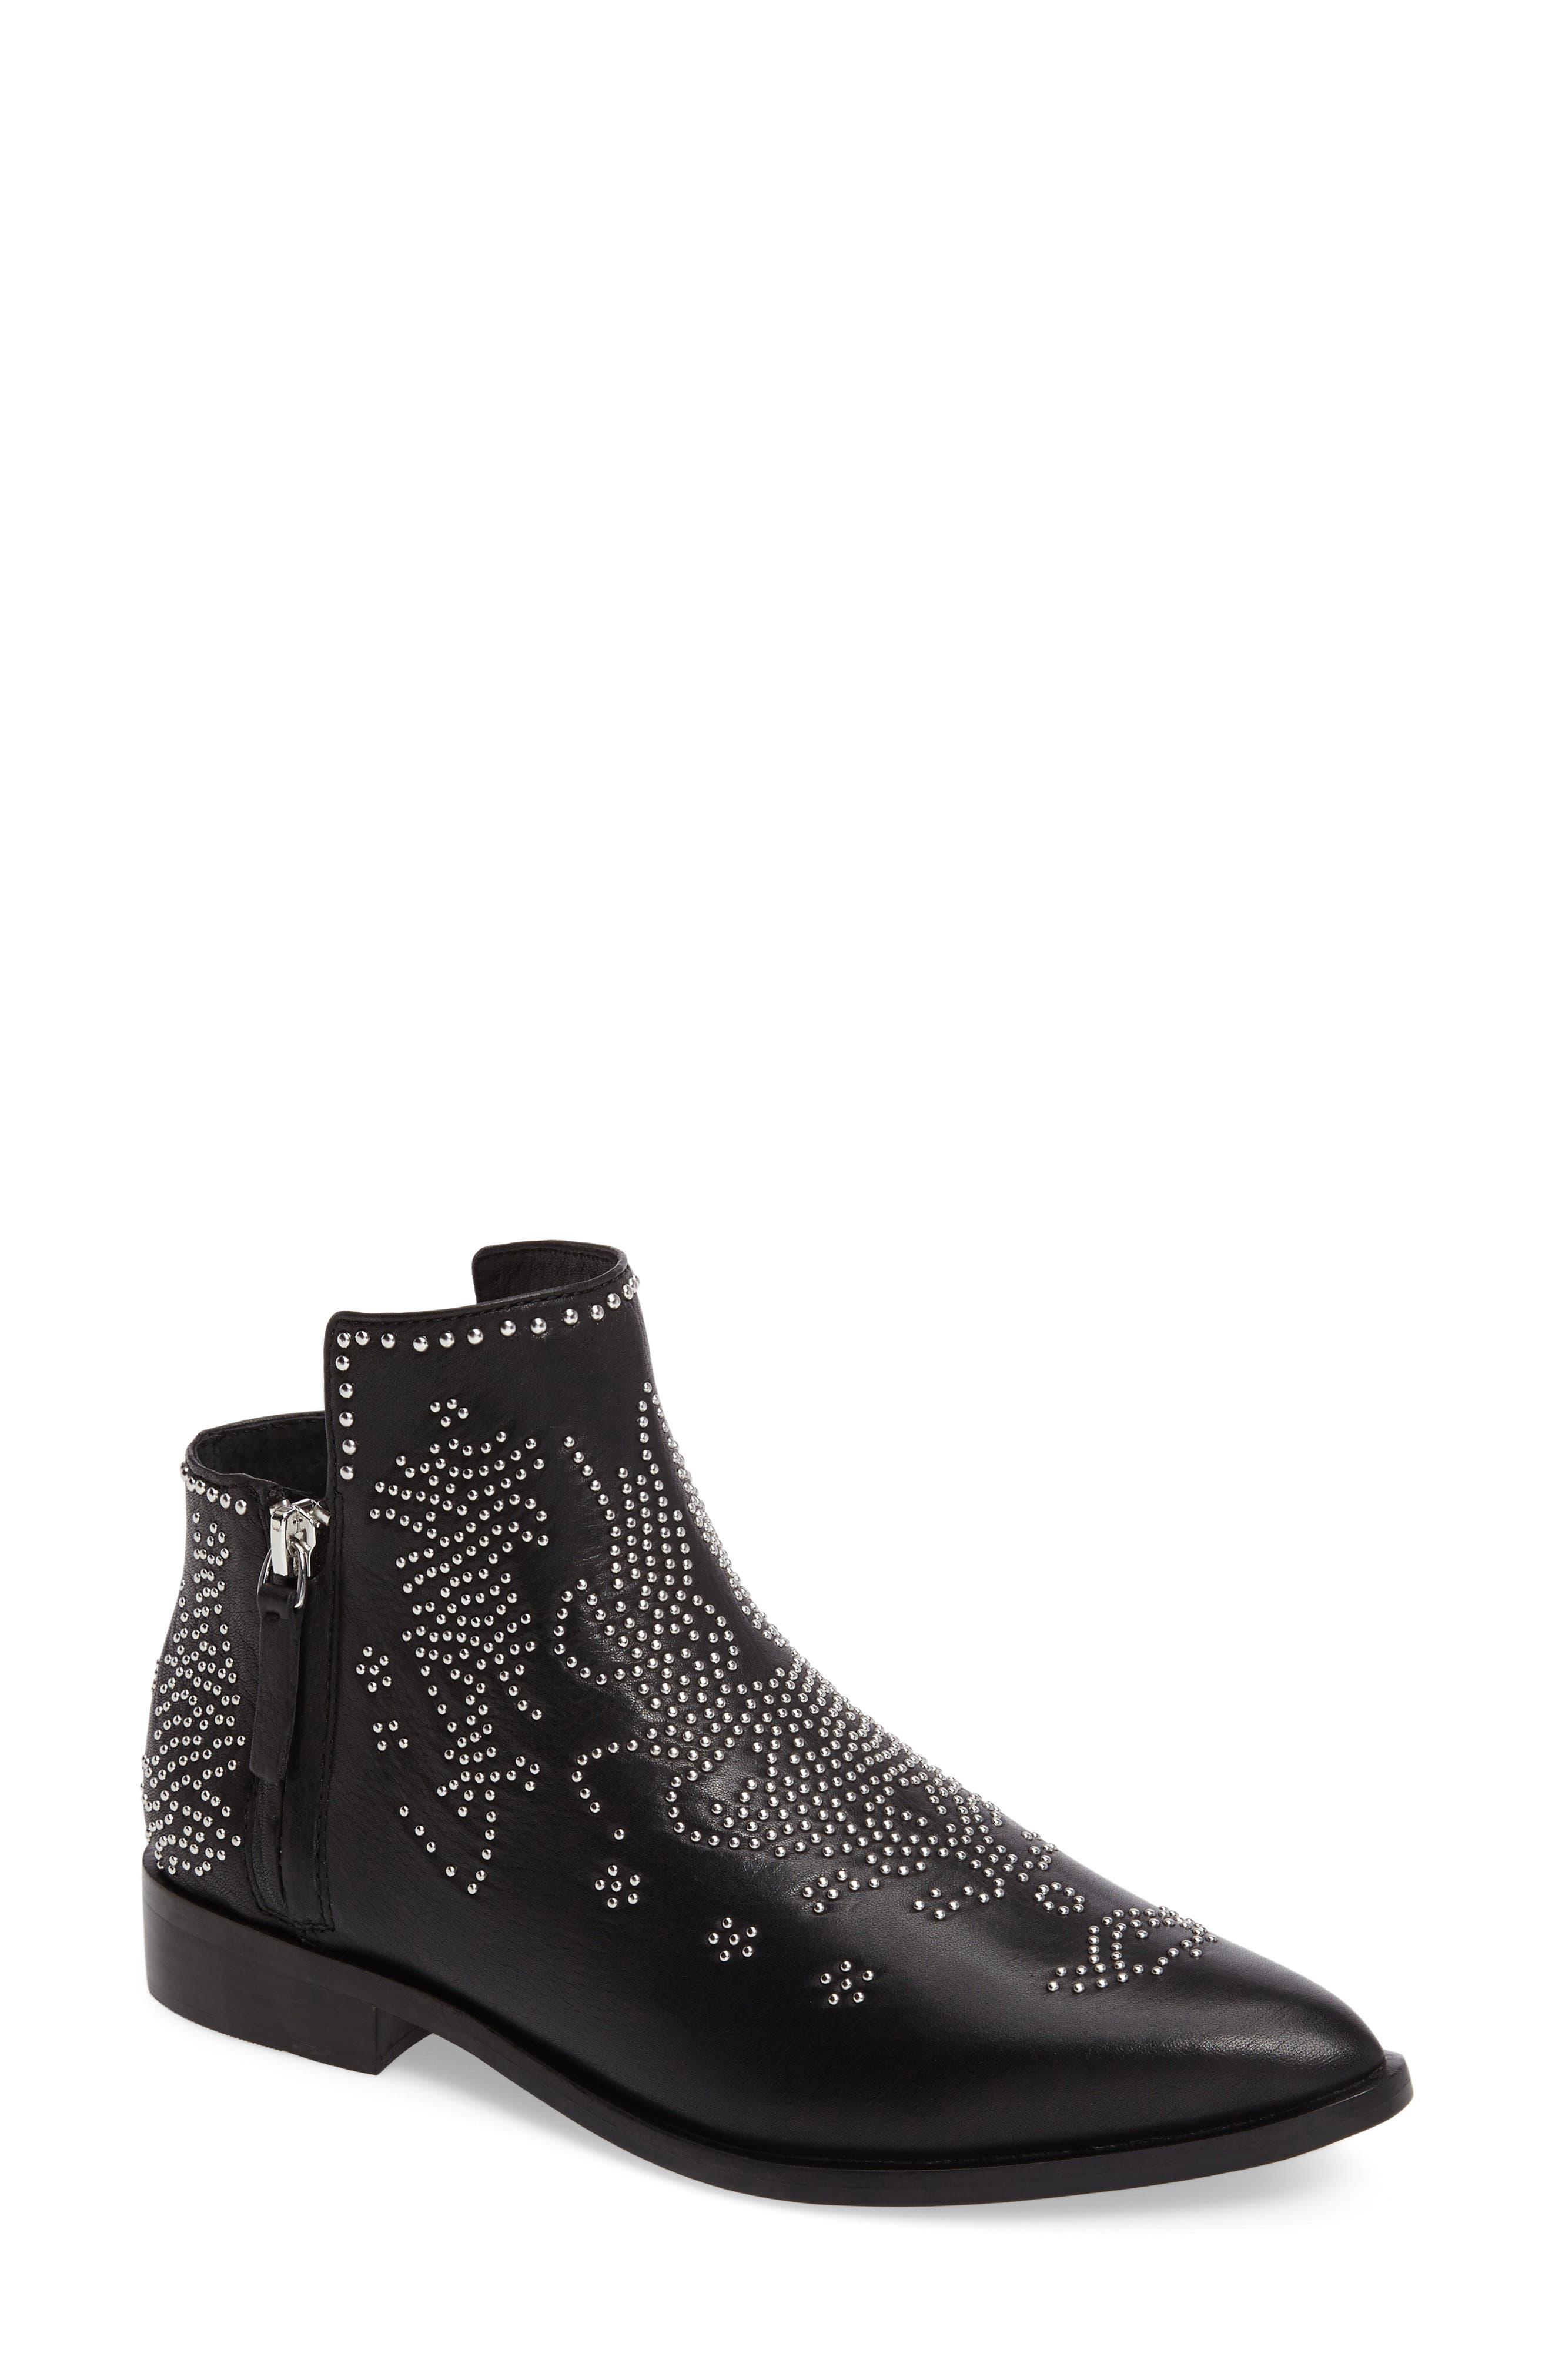 Callback2 Studded Bootie,                             Main thumbnail 1, color,                             Black Leather